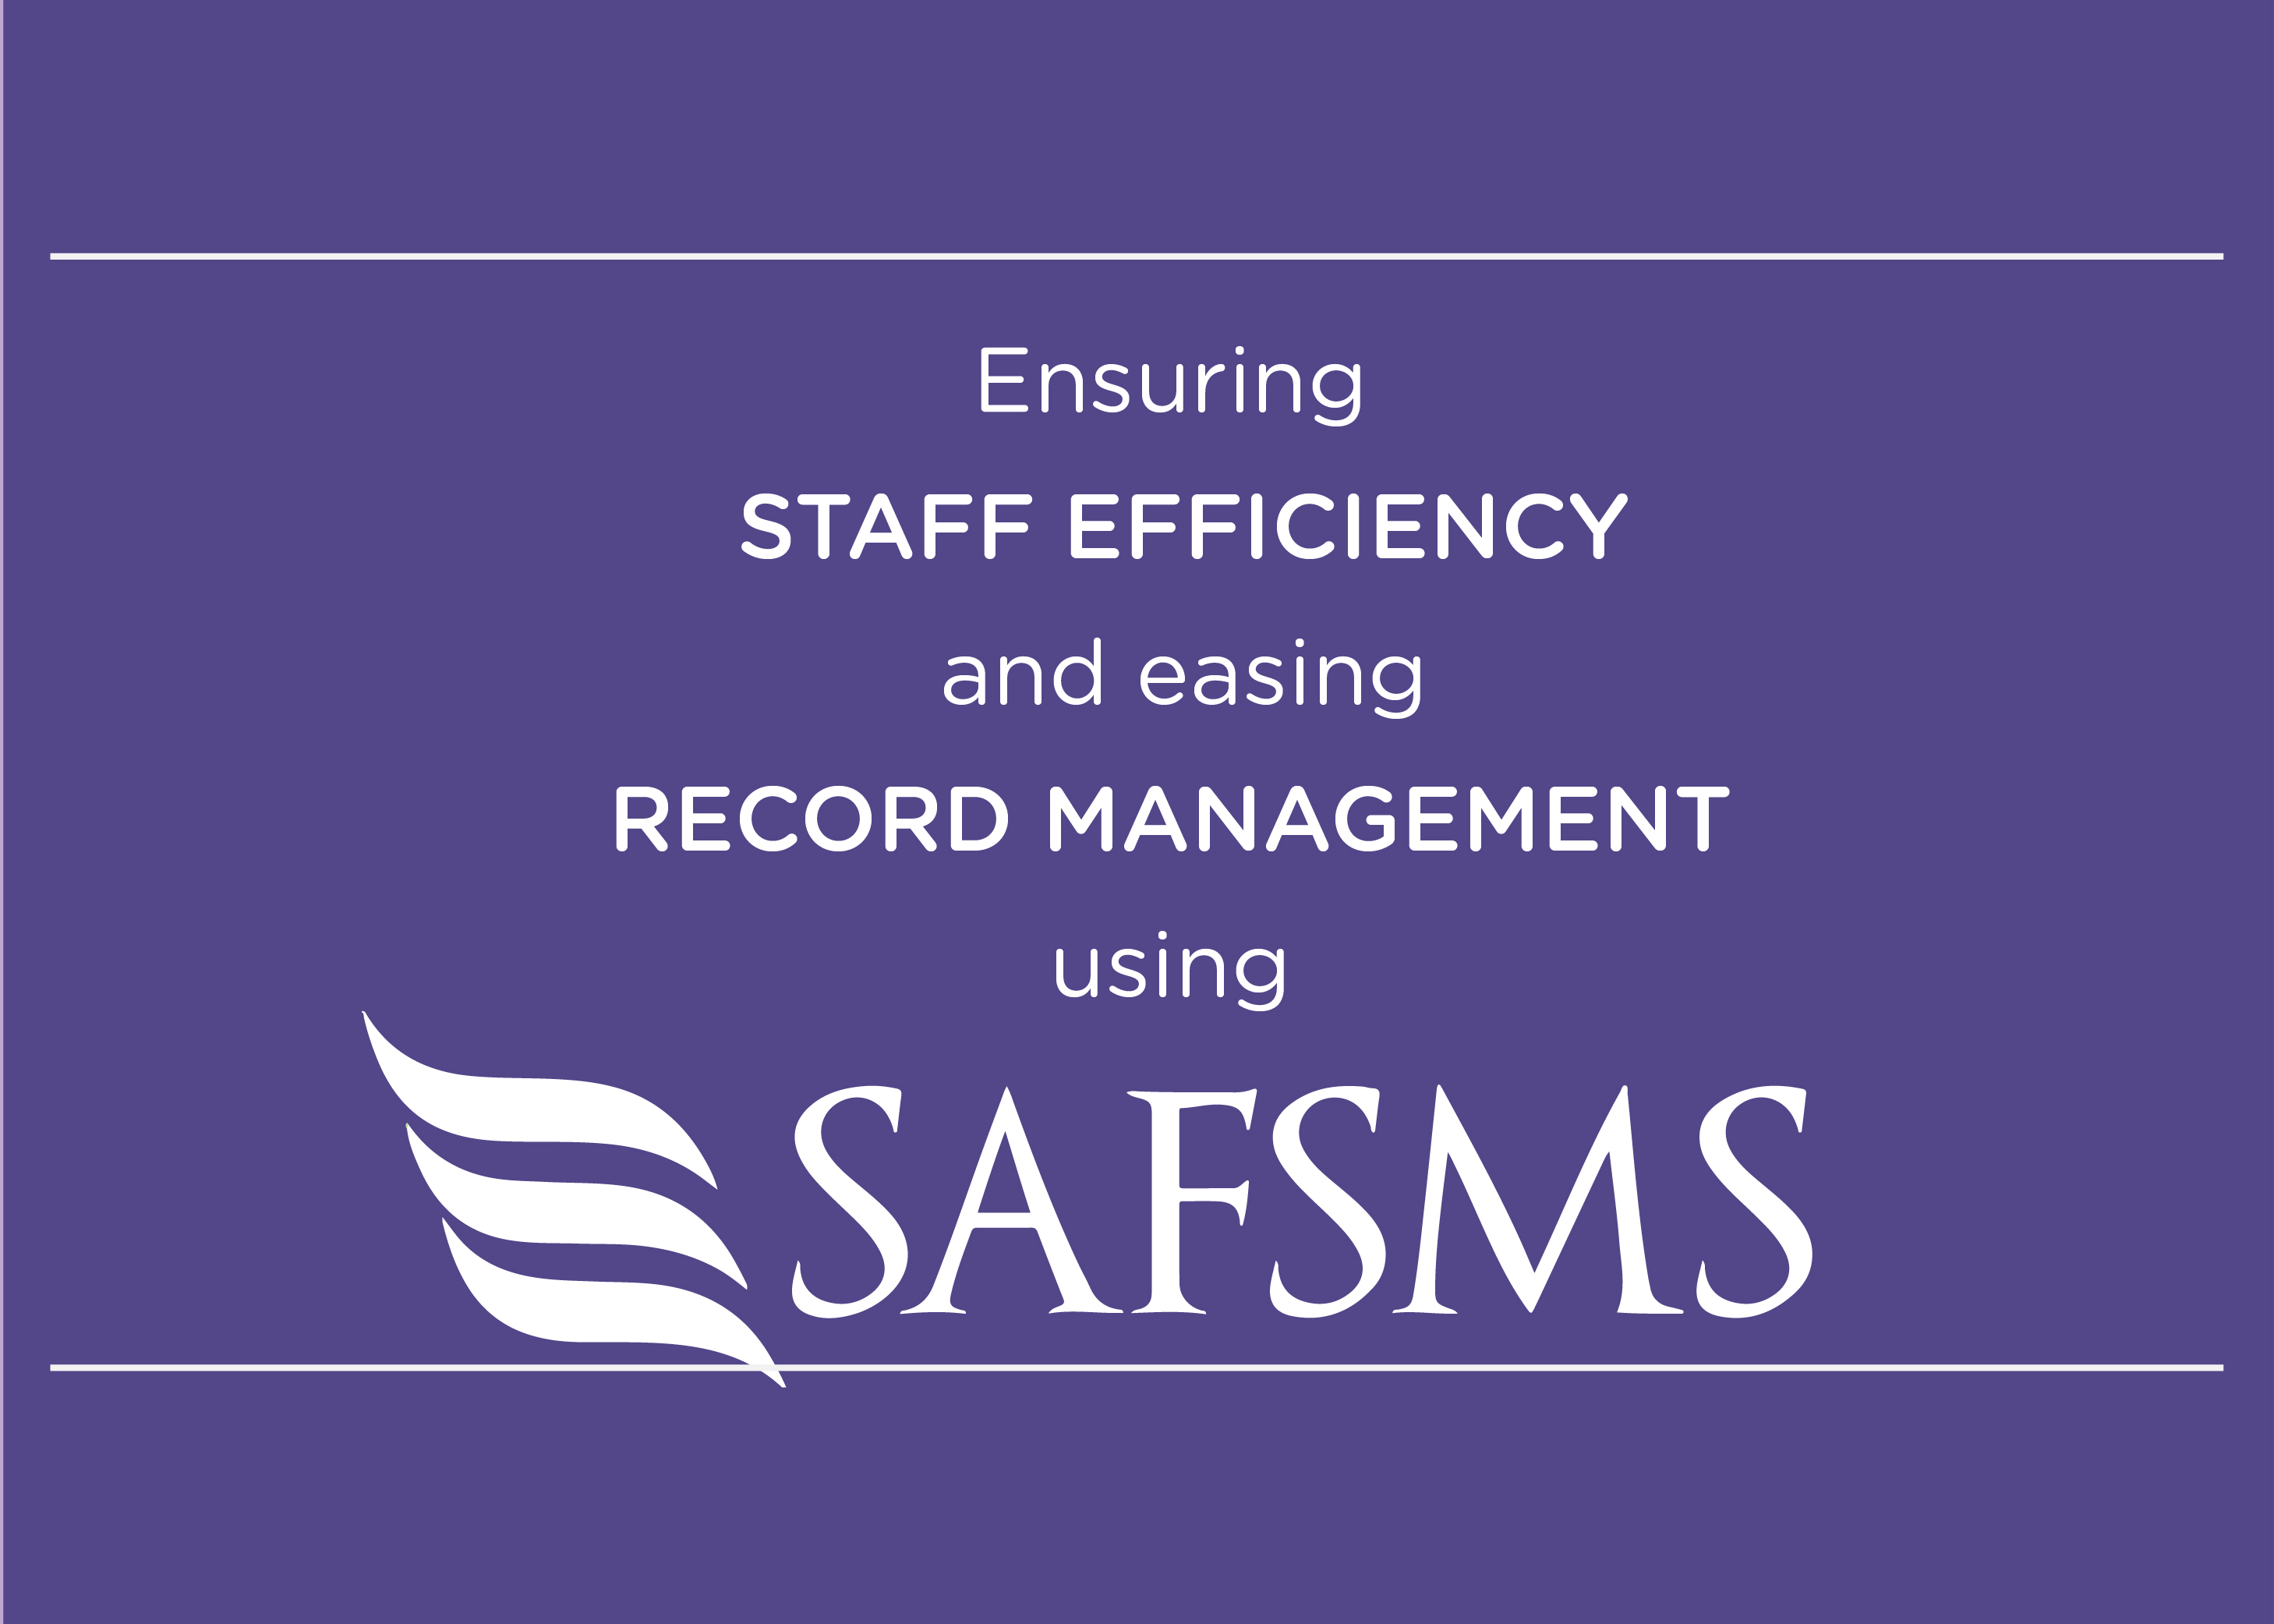 Ensuring staff efficiency and easing record management using SAFSMS